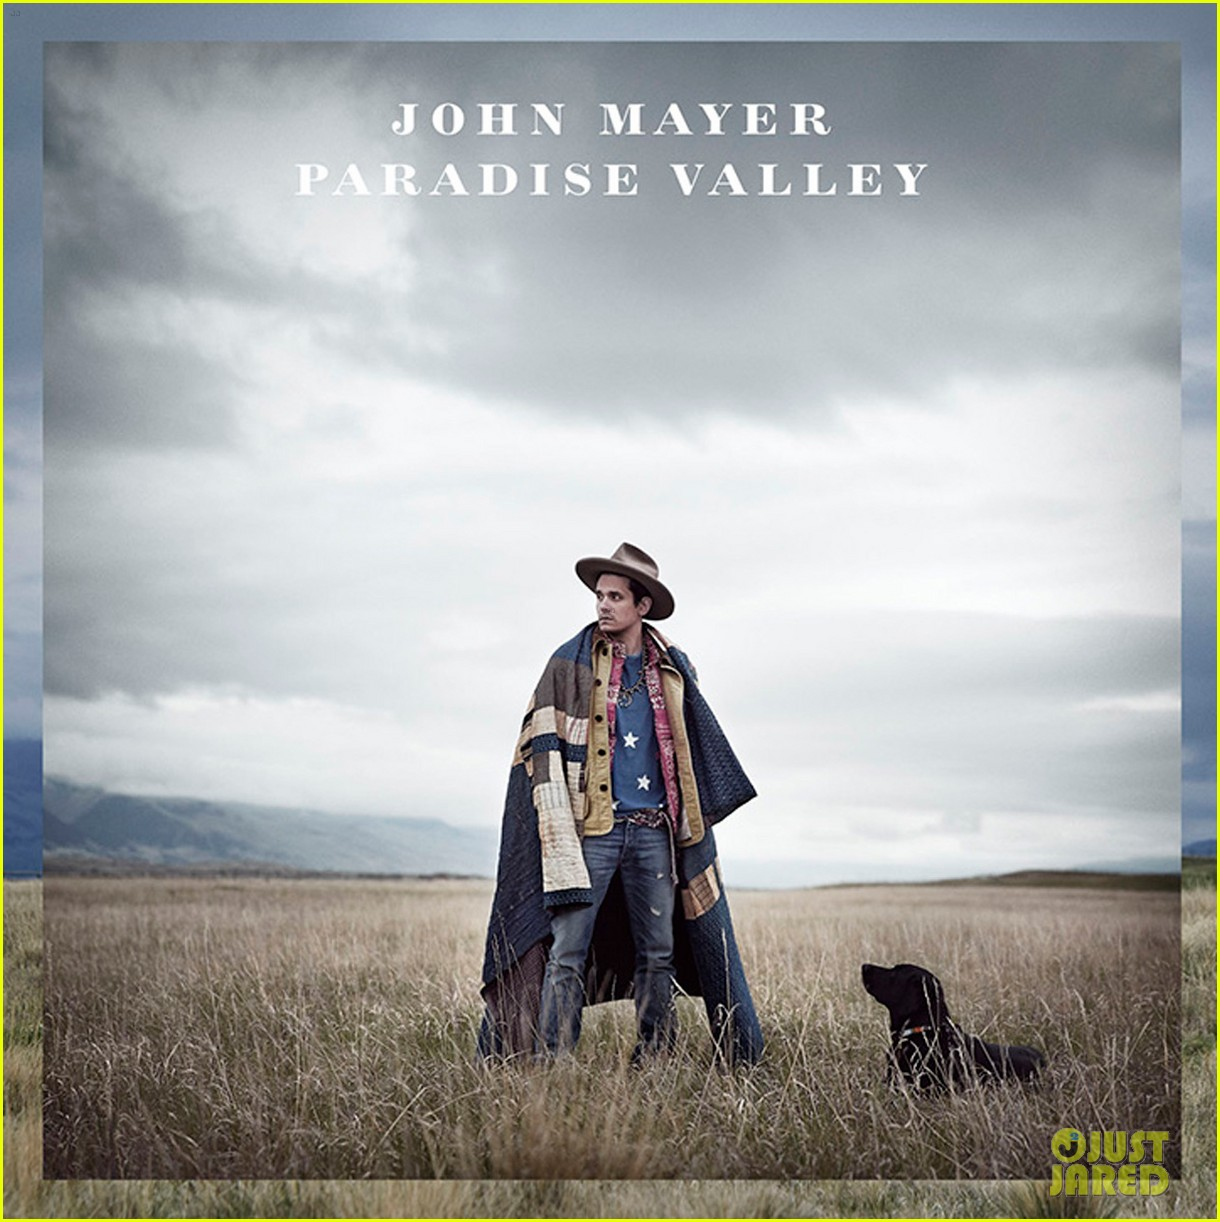 john mayer paradise valley album artwork 01